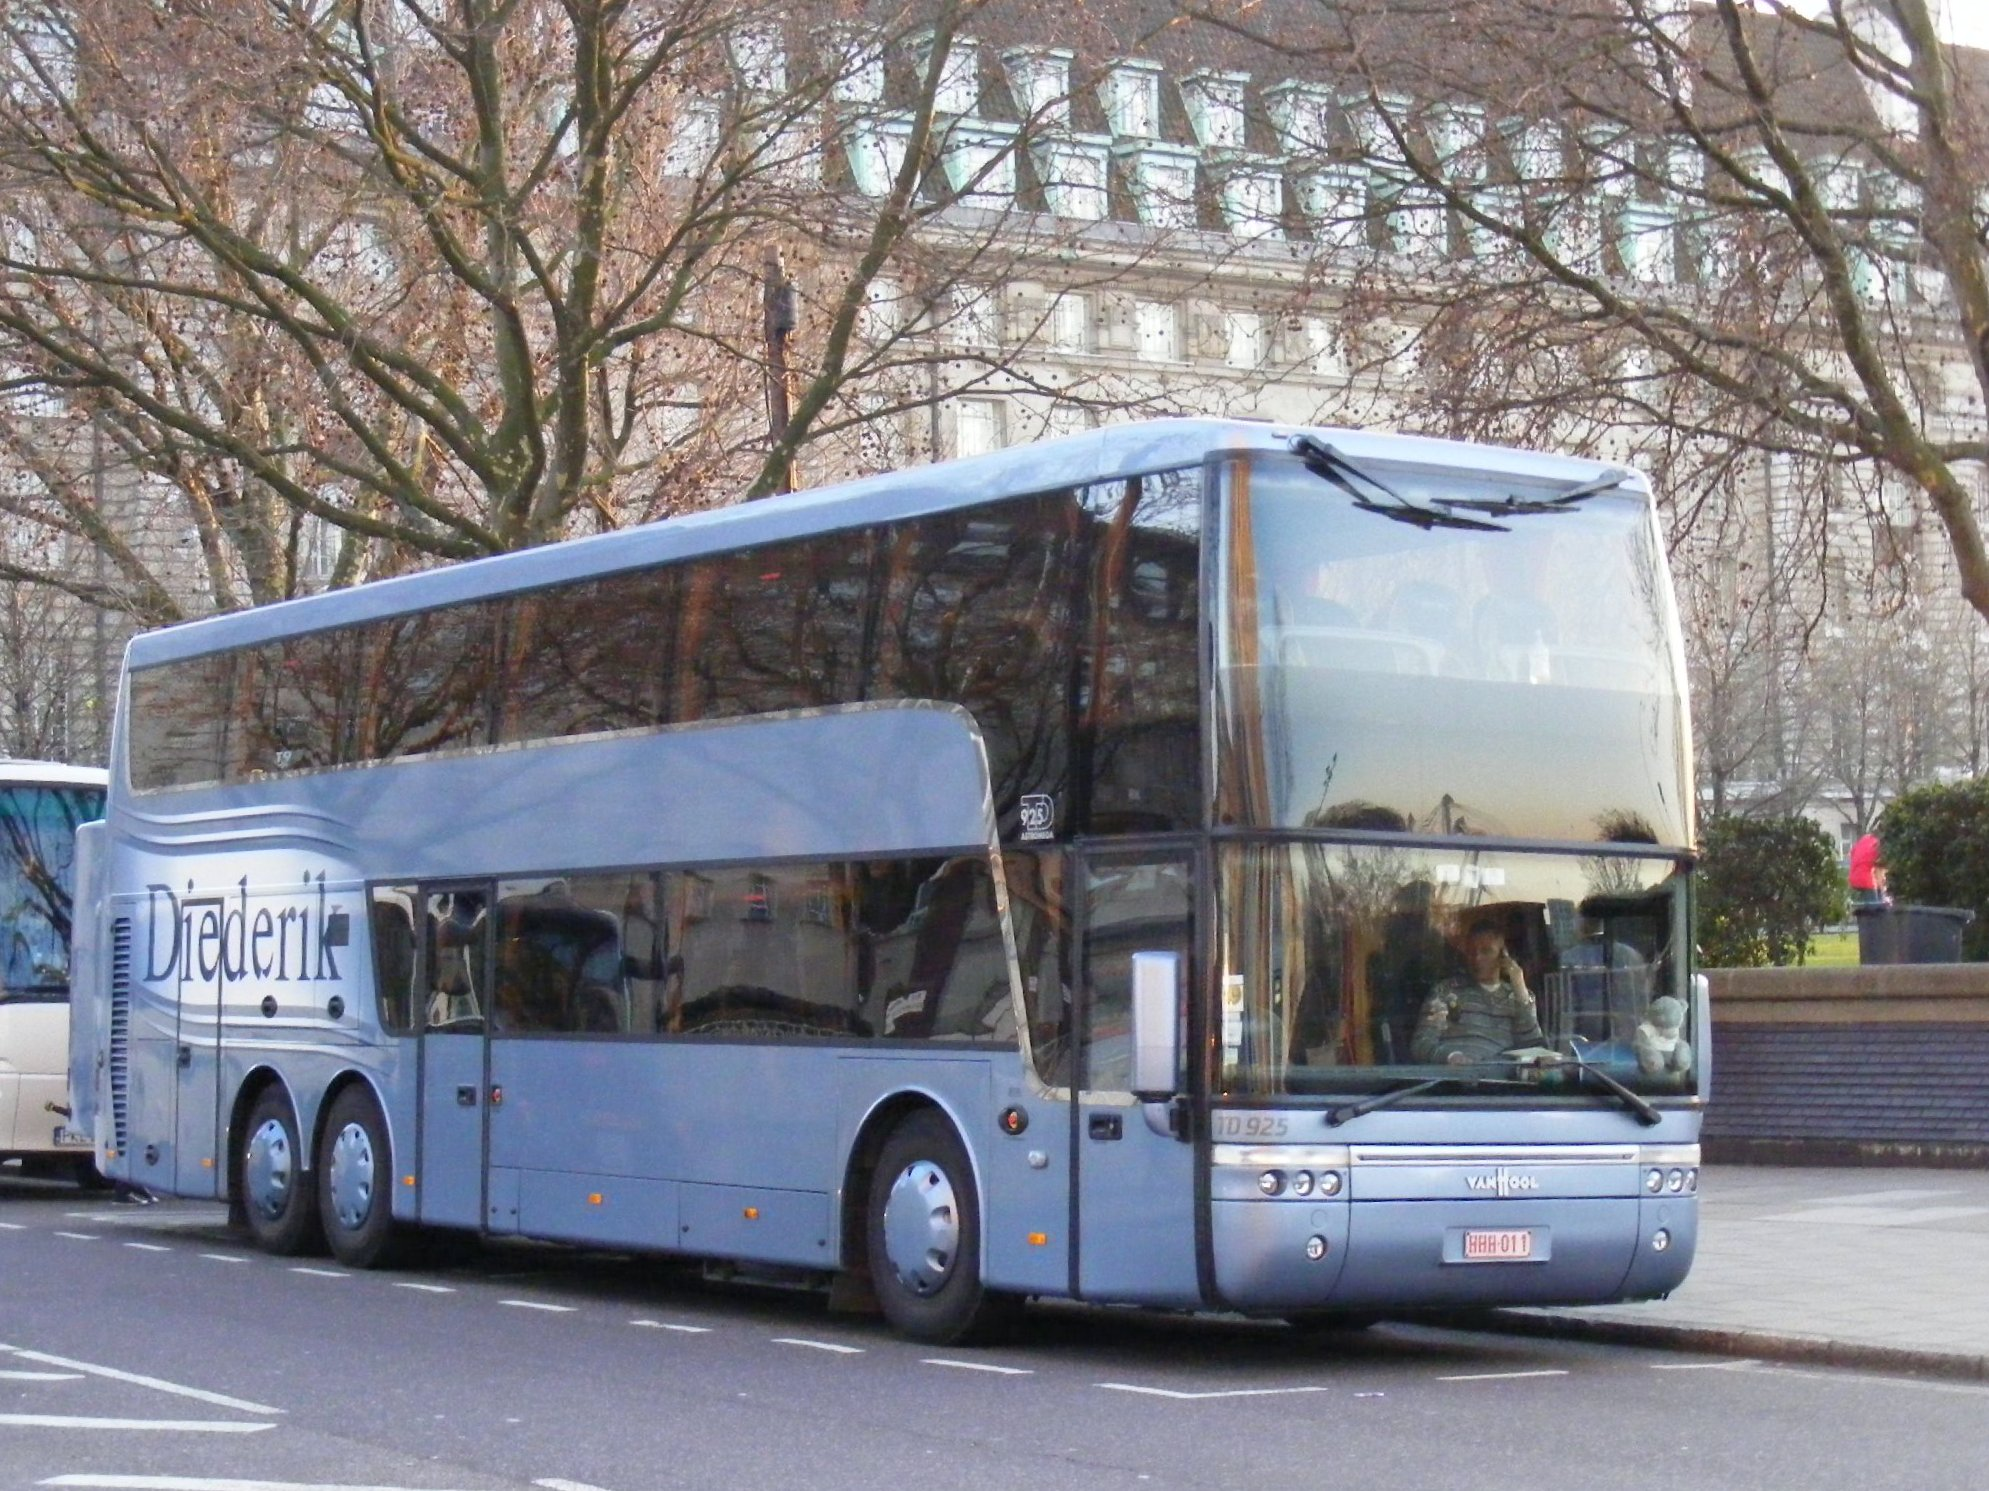 hight resolution of bus van hool c2045 wiring diagrams official site wiring diagramsvan hool c2045 wiring diagrams 2002